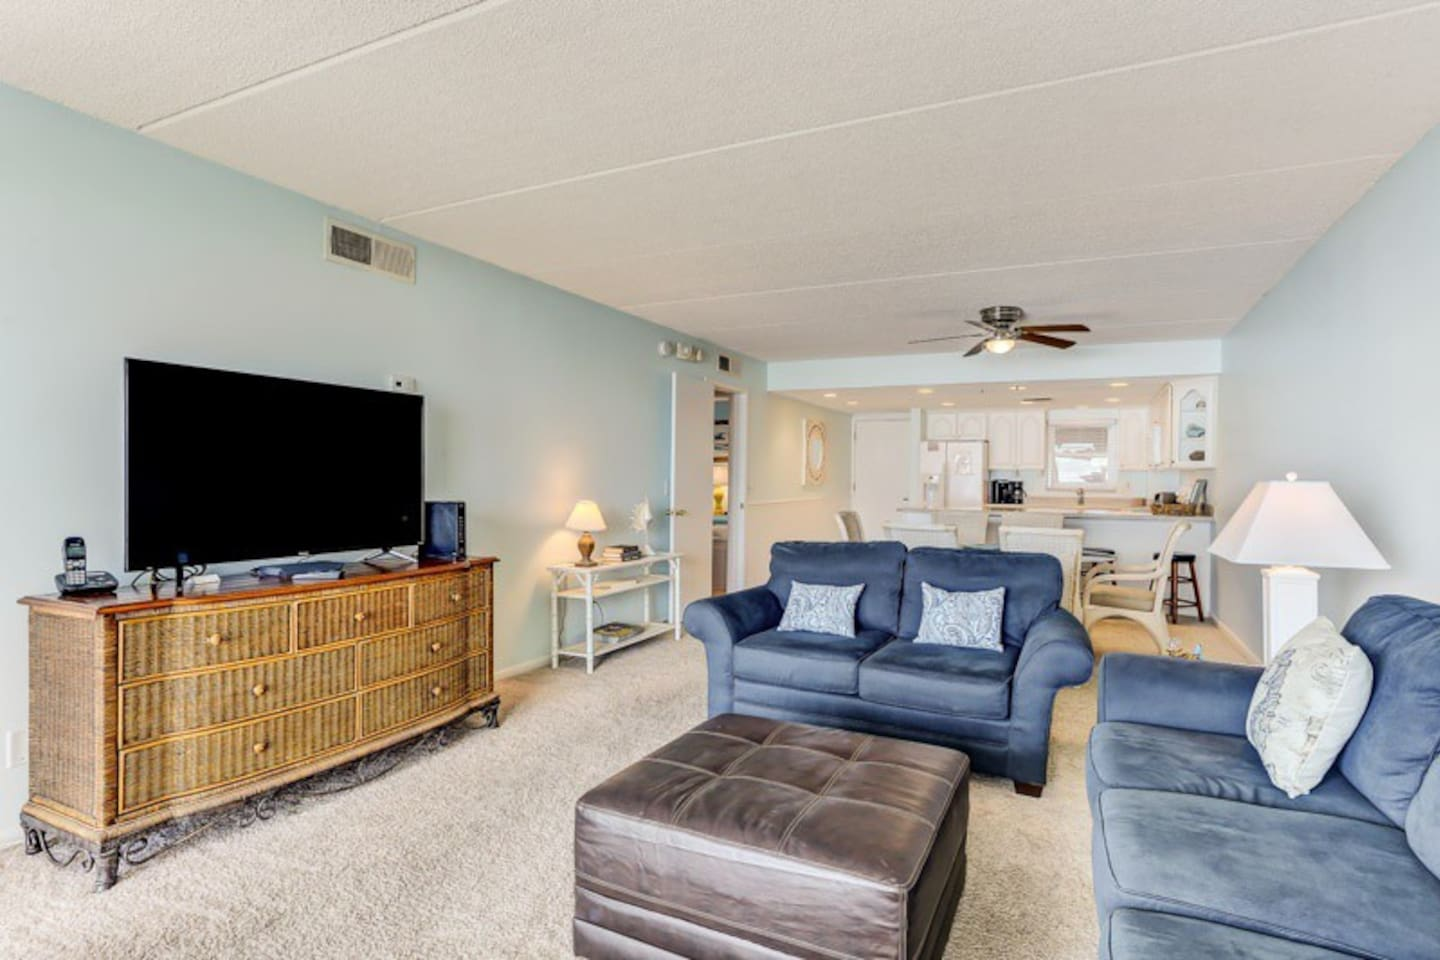 Furniture,Screen,Couch,TV,Television